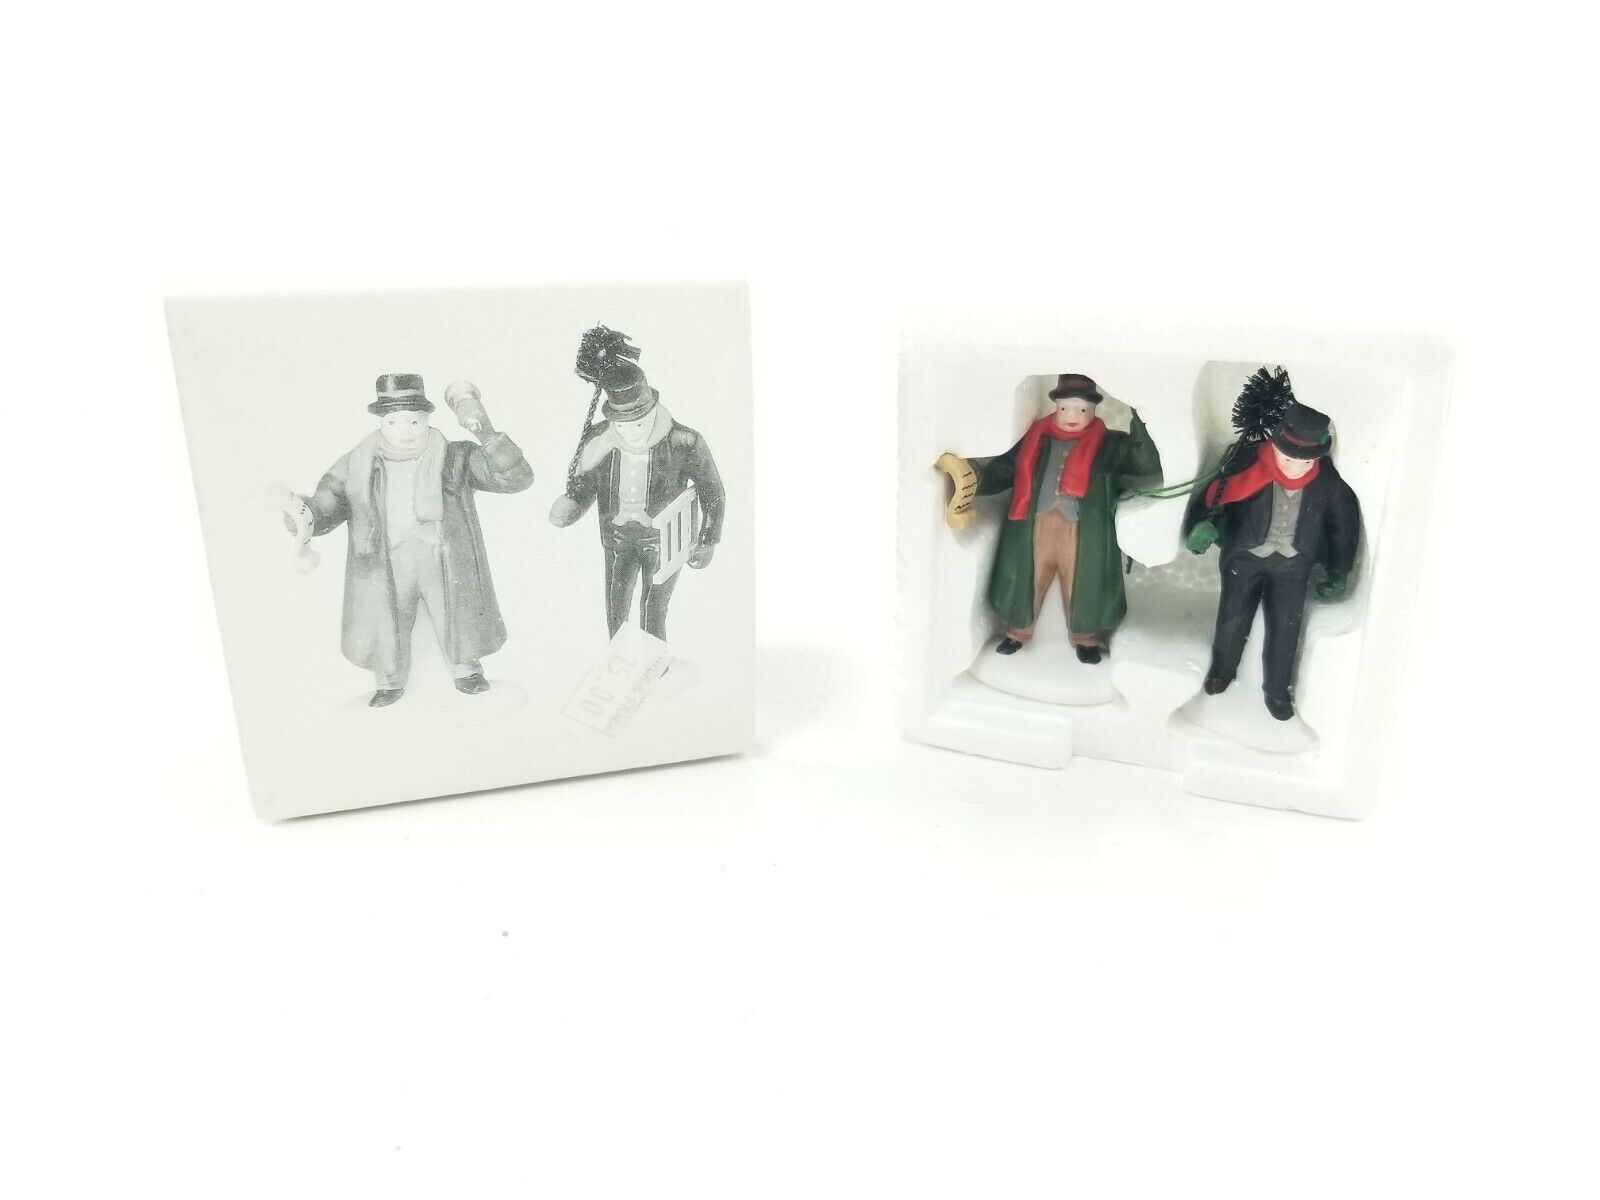 Primary image for Department 56 Dickens Village Accessory Town Crier & Chimney Sweep #55697 in Box